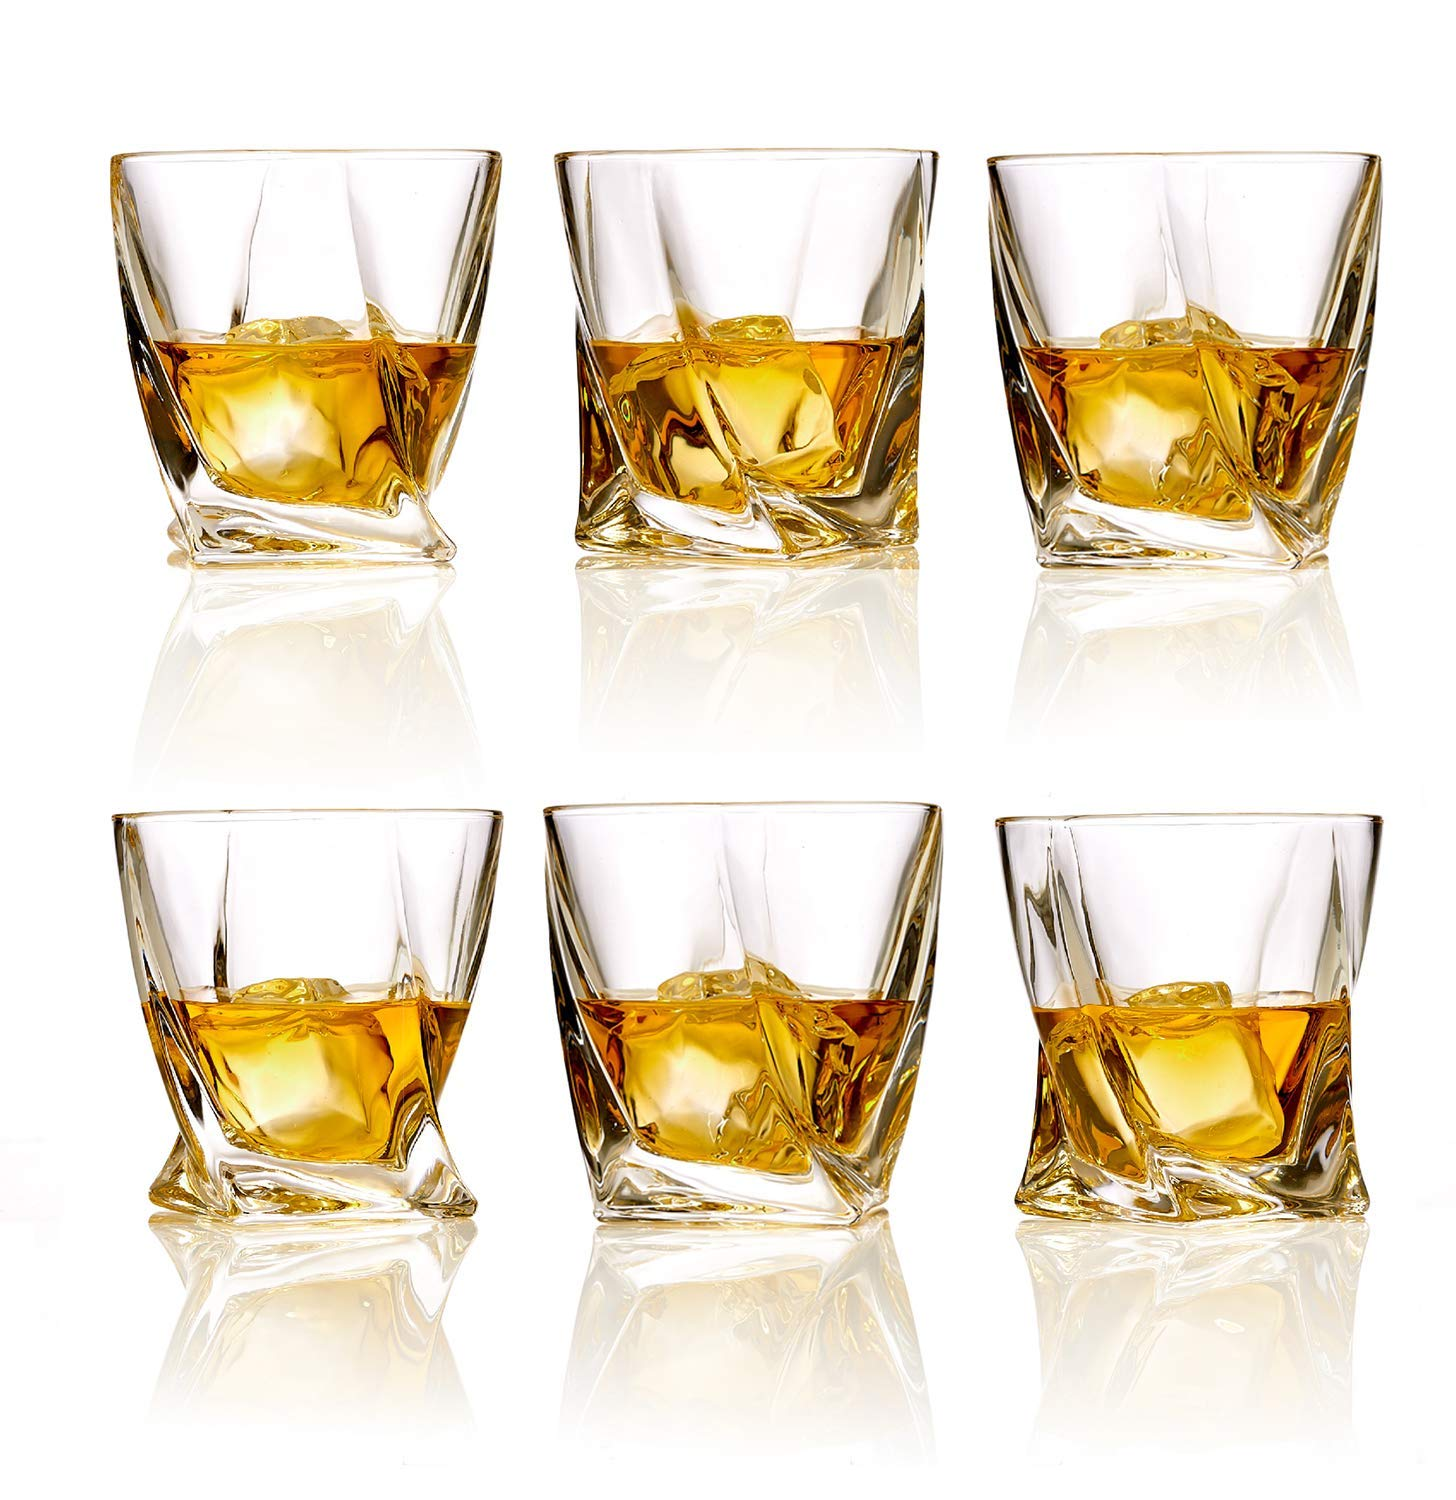 Whiskey Glasses Set of 6 Lead Free Crystal Old Fashioned Rock Glass Scotch Bourbon and Spirits 10 Ounce Liqueur Tumbler by Bezrat (Image #3)